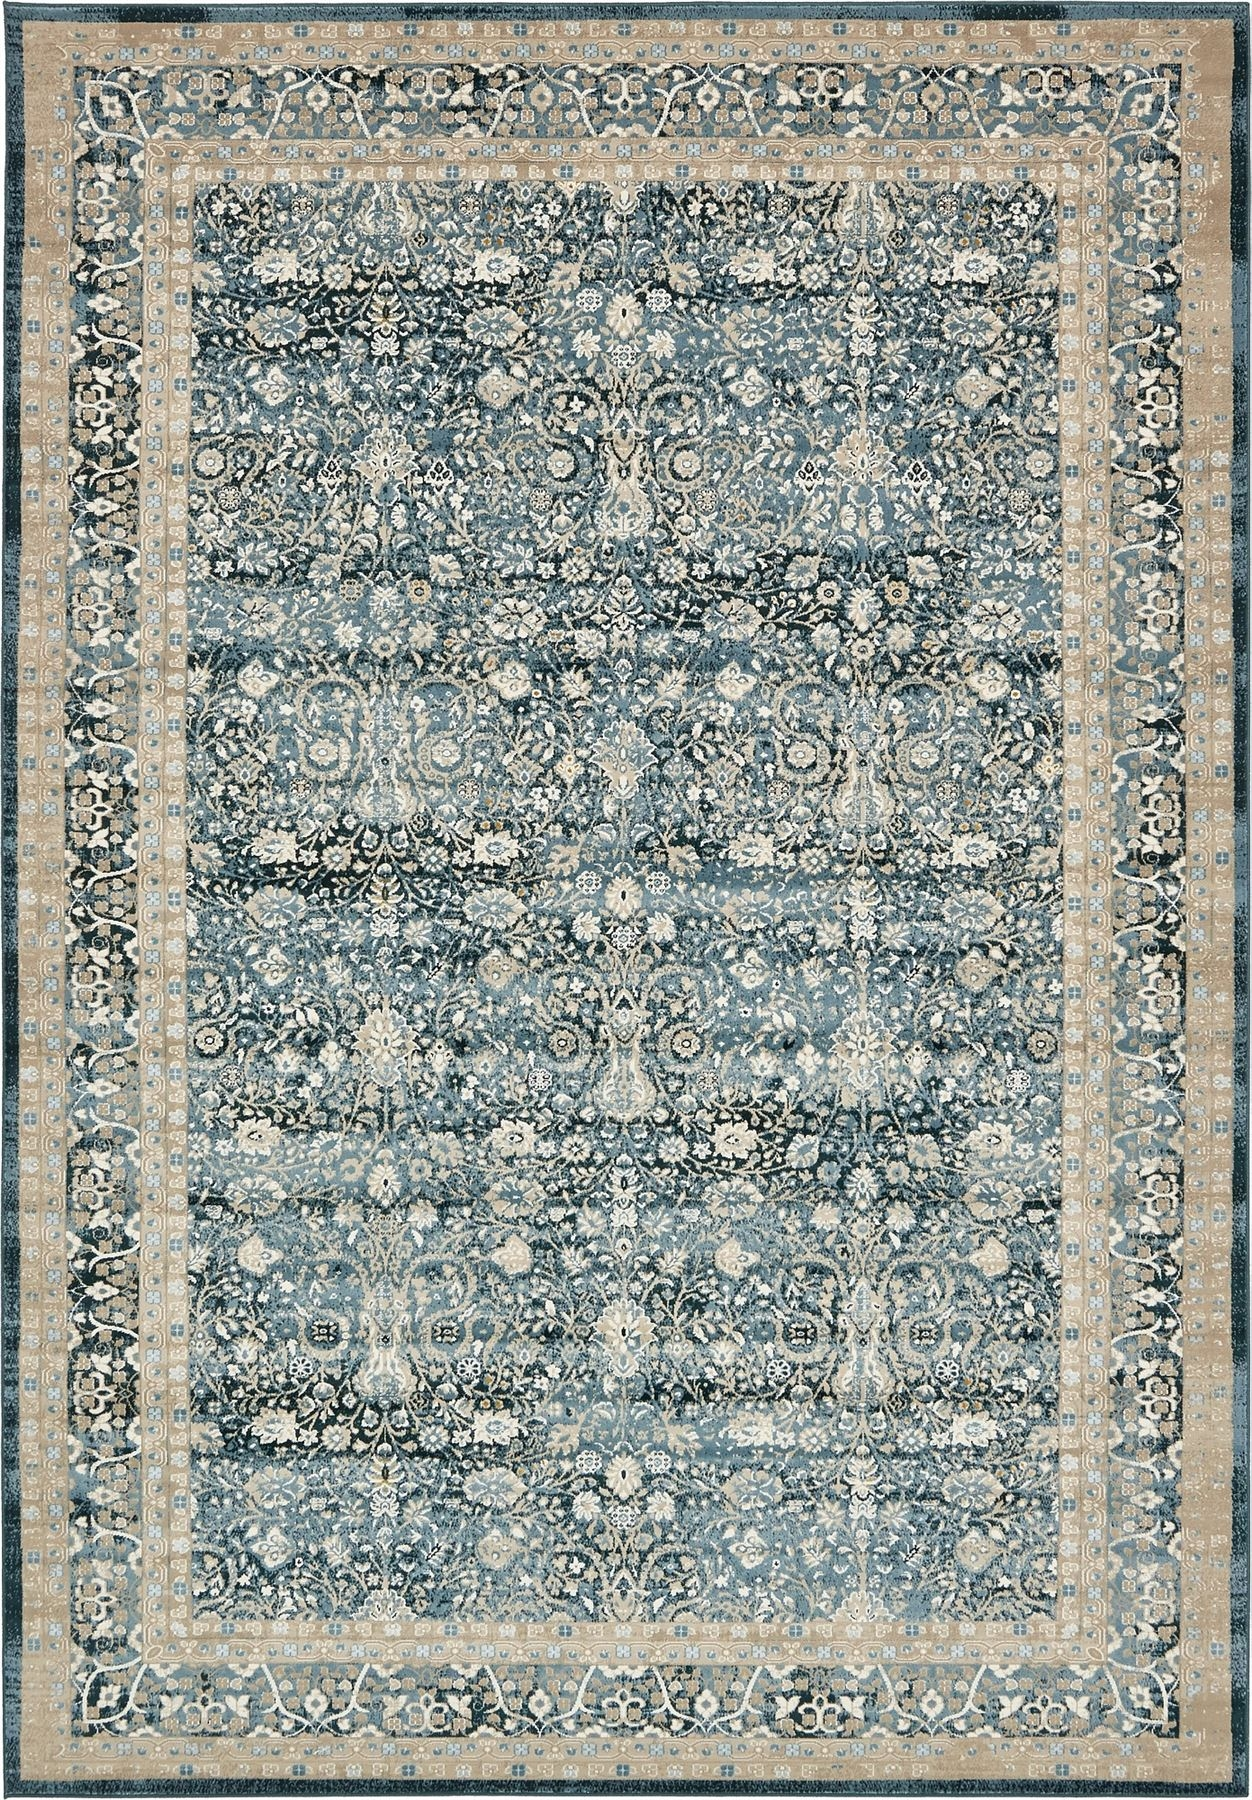 Traditional Carpets Vintage Modern Rug Floor Rug Area Carpet Ebay Pertaining To Traditional Carpets (Image 7 of 15)